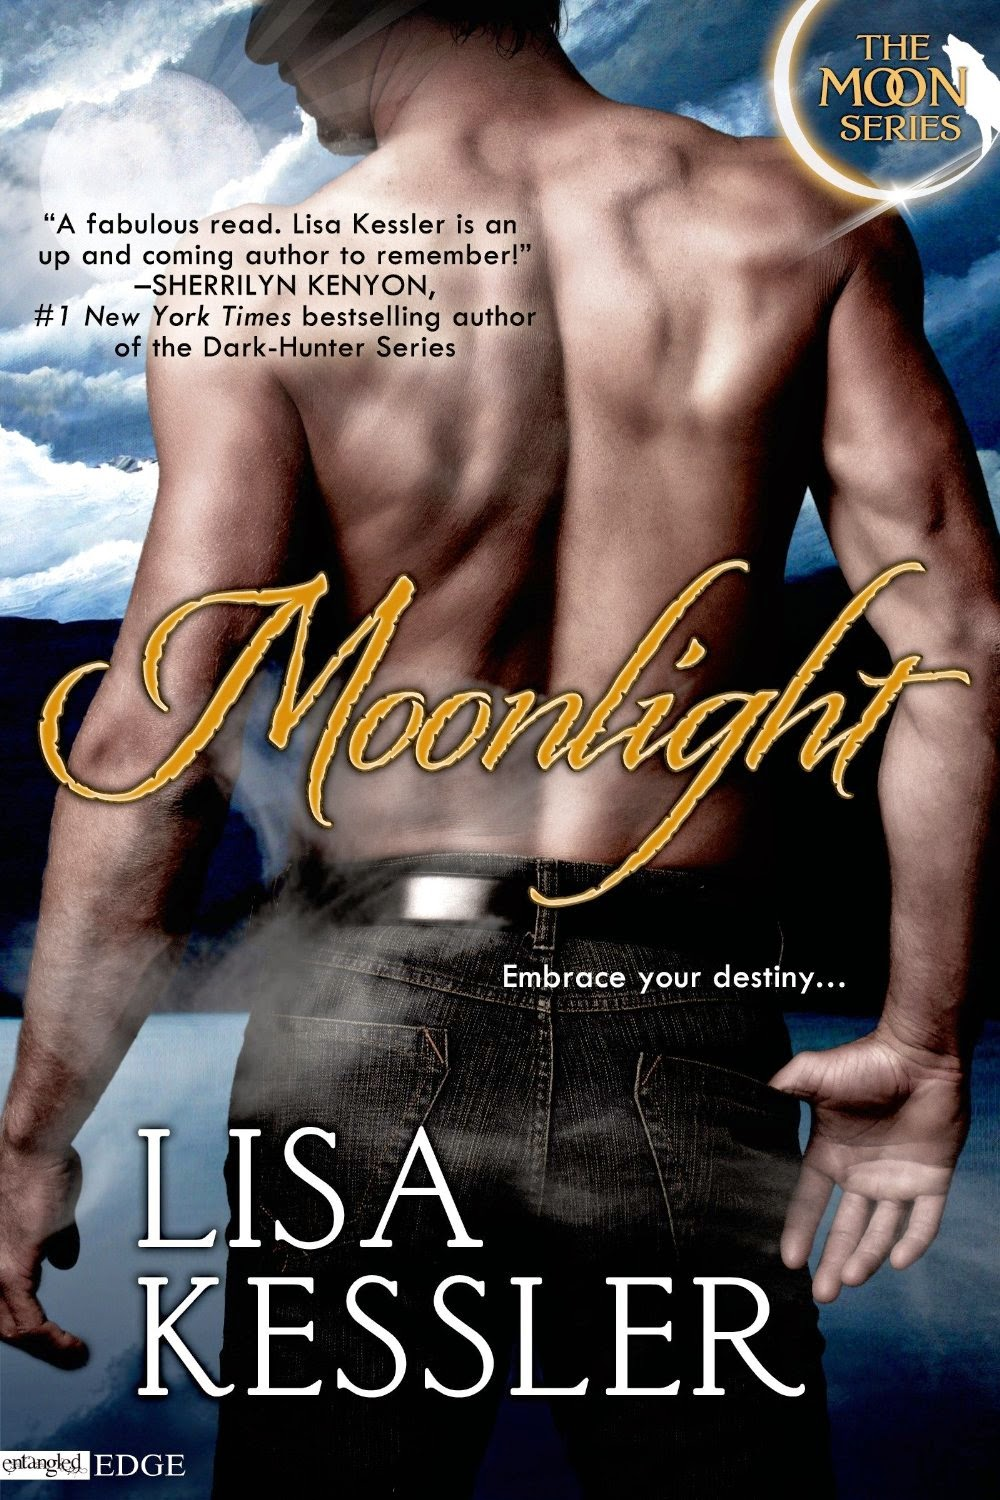 Moonlight (The Moon Series) by Lisa Kessler (PNR)